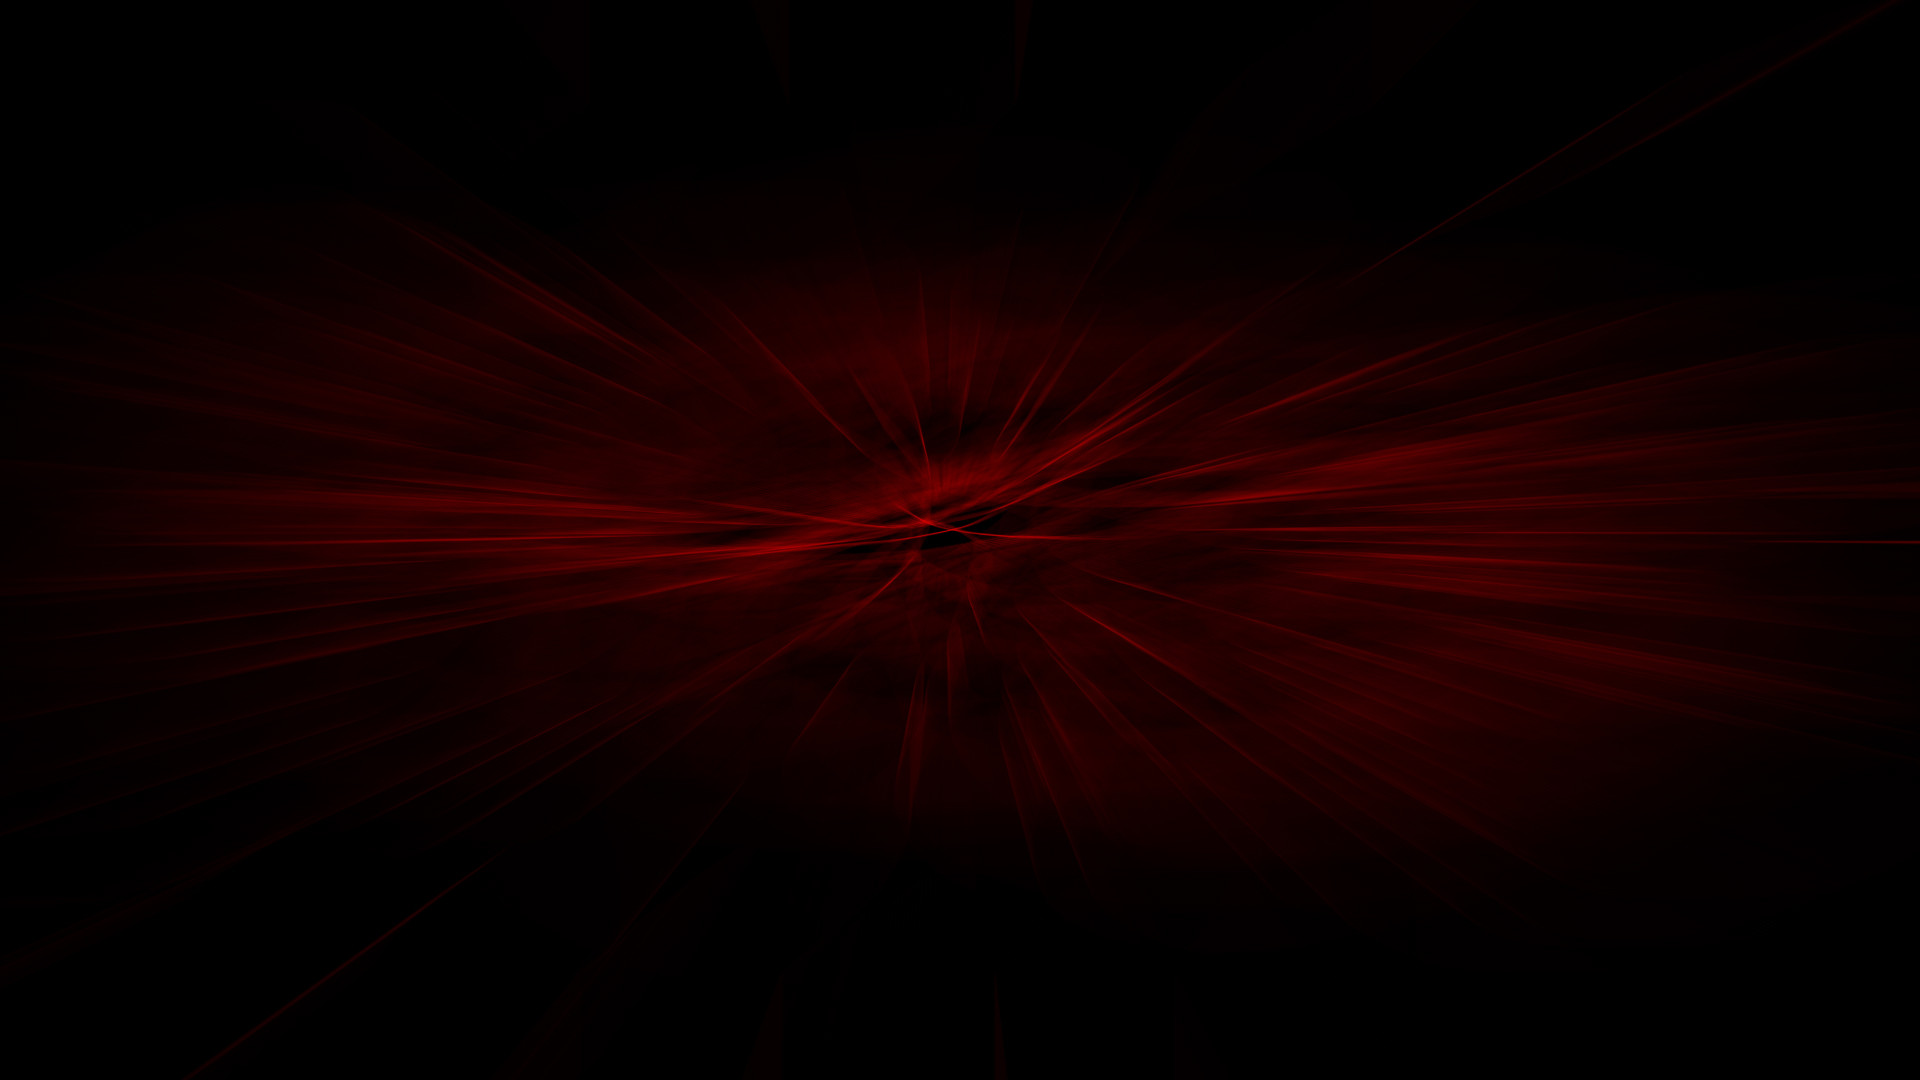 Dazzling Liquid Light Background Wallpaper for PC Laptop Â« Pin HD Wallpapers  | 3D & Abstracts Wallpapers | Pinterest | Lights background